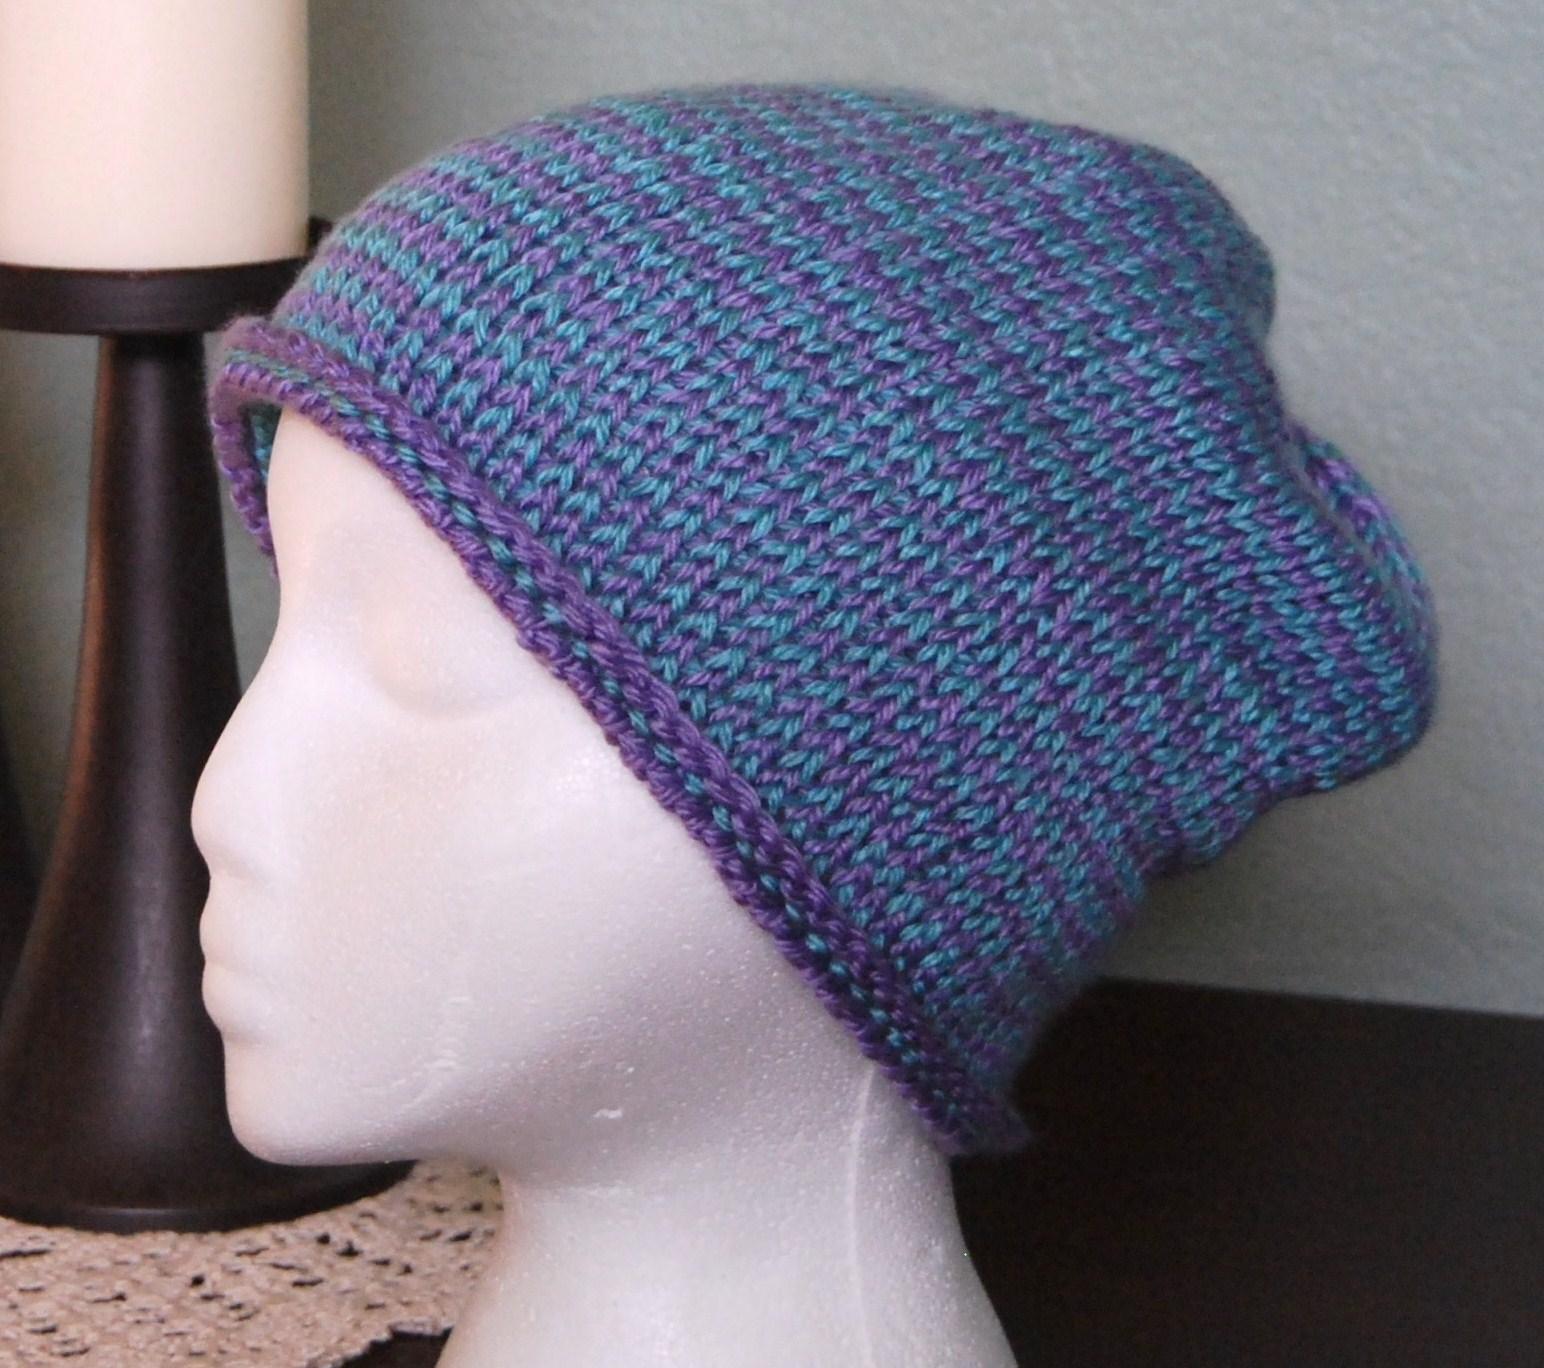 Crochet Knit Stitch Hat : The Laughing Willow: Seaming Tunisian knit stitch and a free pattern!